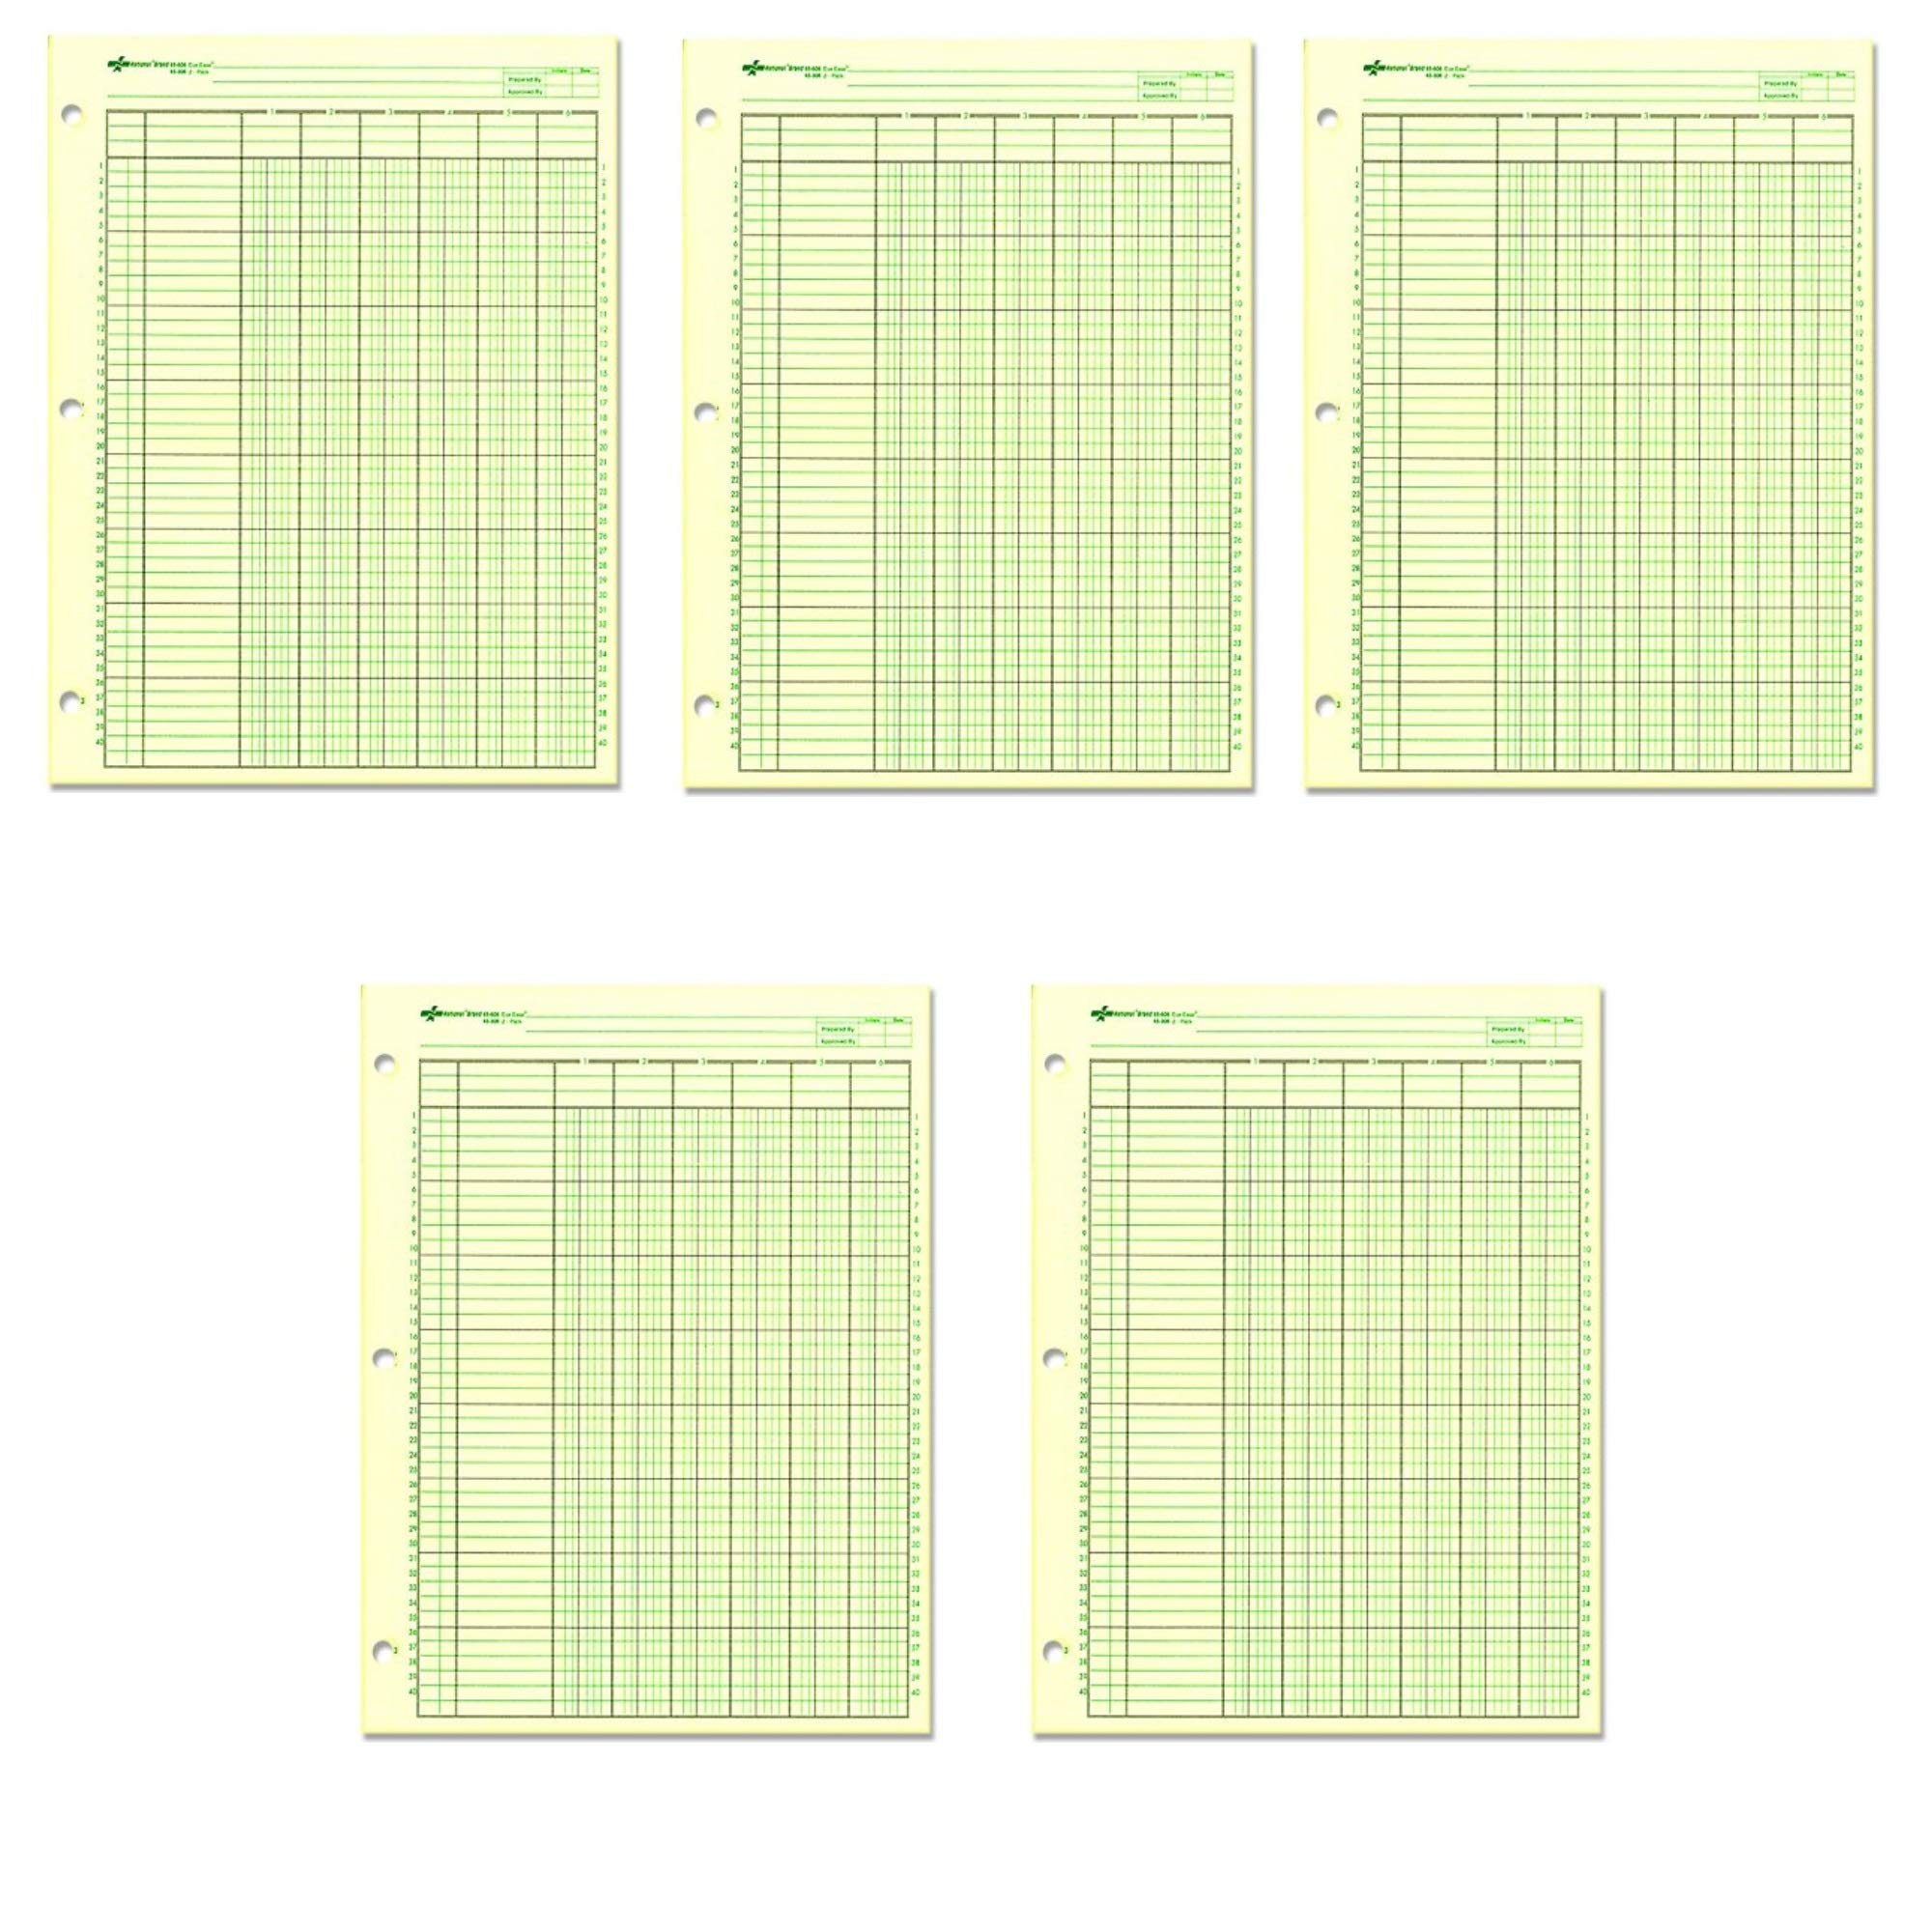 NATIONAL Analysis Pad, 6 Columns, Green Paper, 11 x 8.5'', 50 Sheets (45606), 5 Pack by NATIONAL